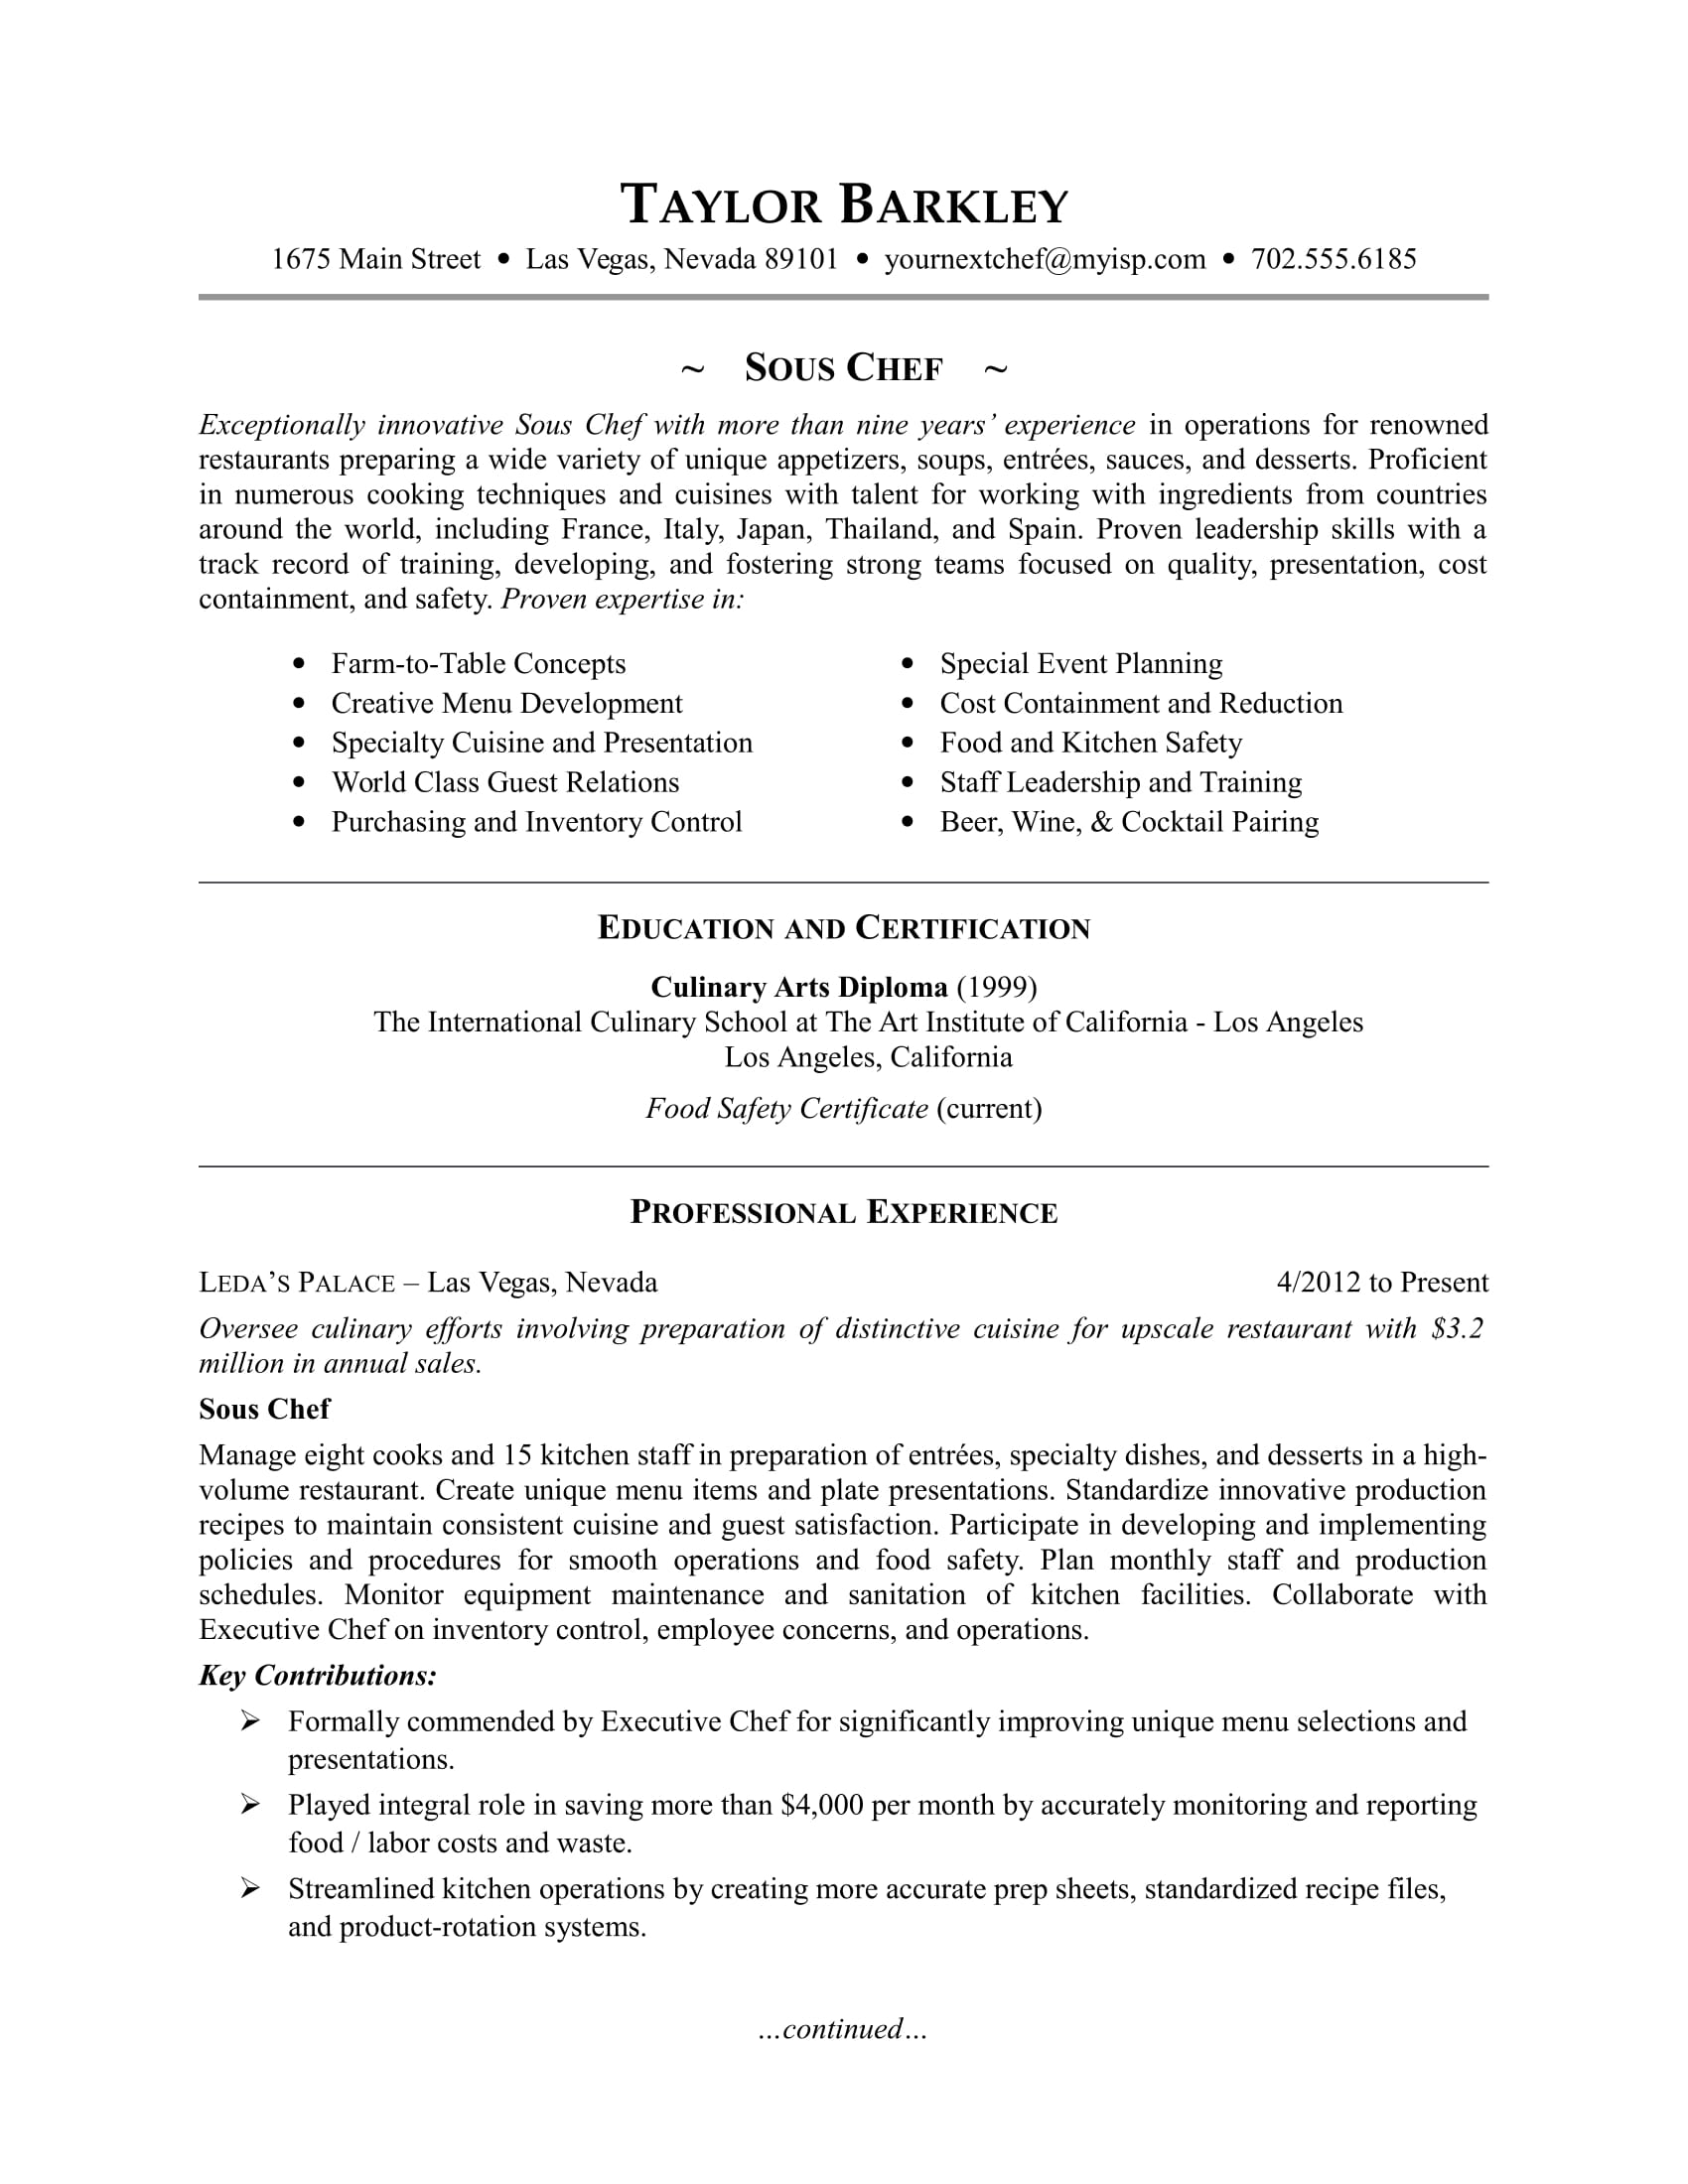 Sample Resume For A Sous Chef  Cook Resume Sample